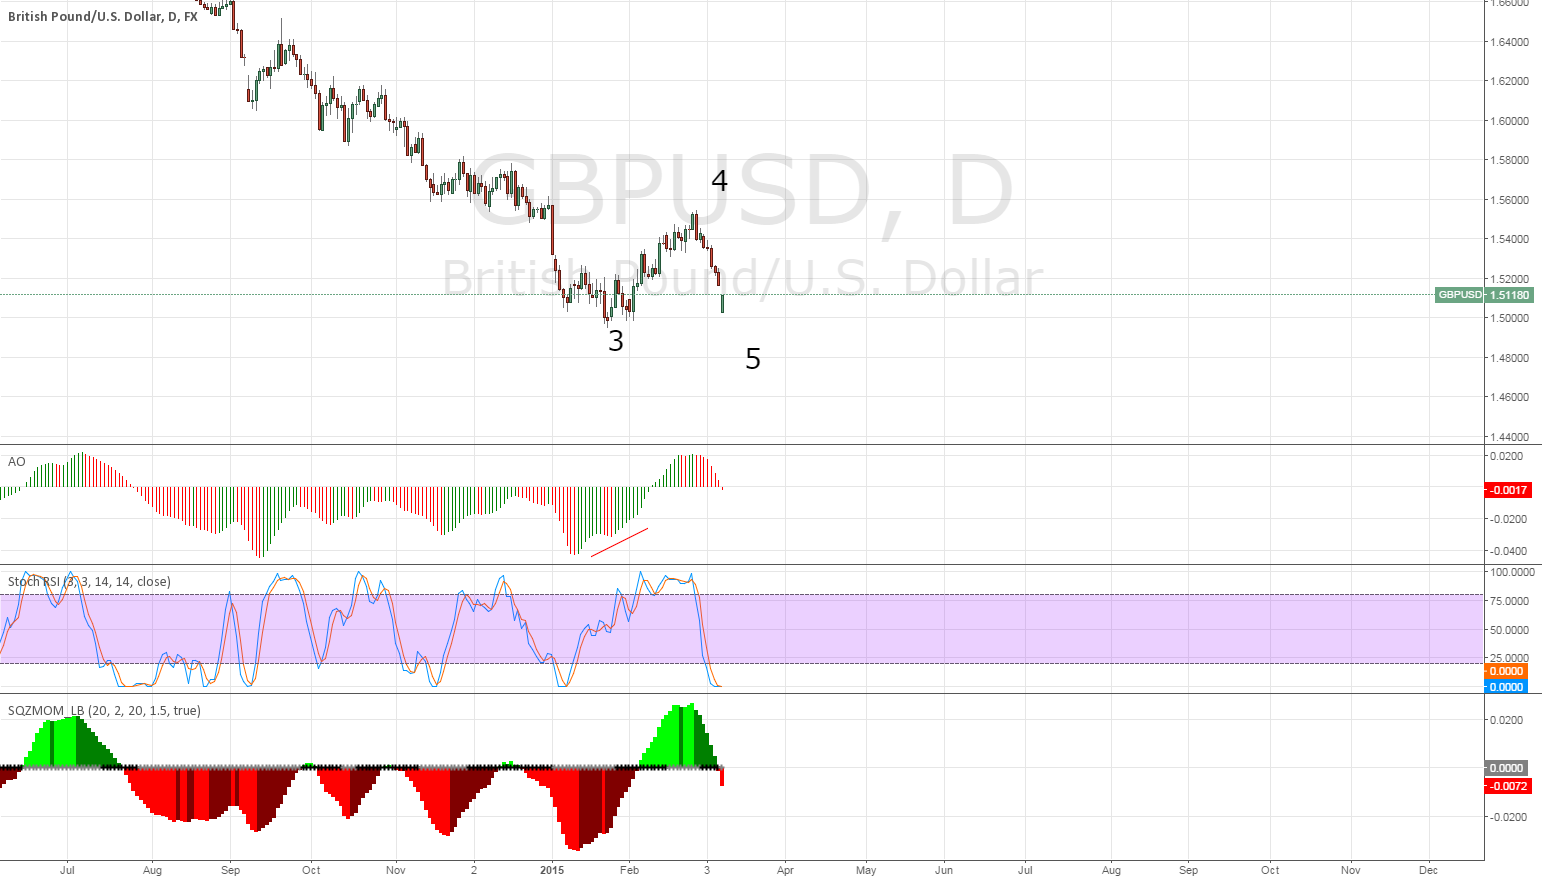 The same third wave divergence on the pound